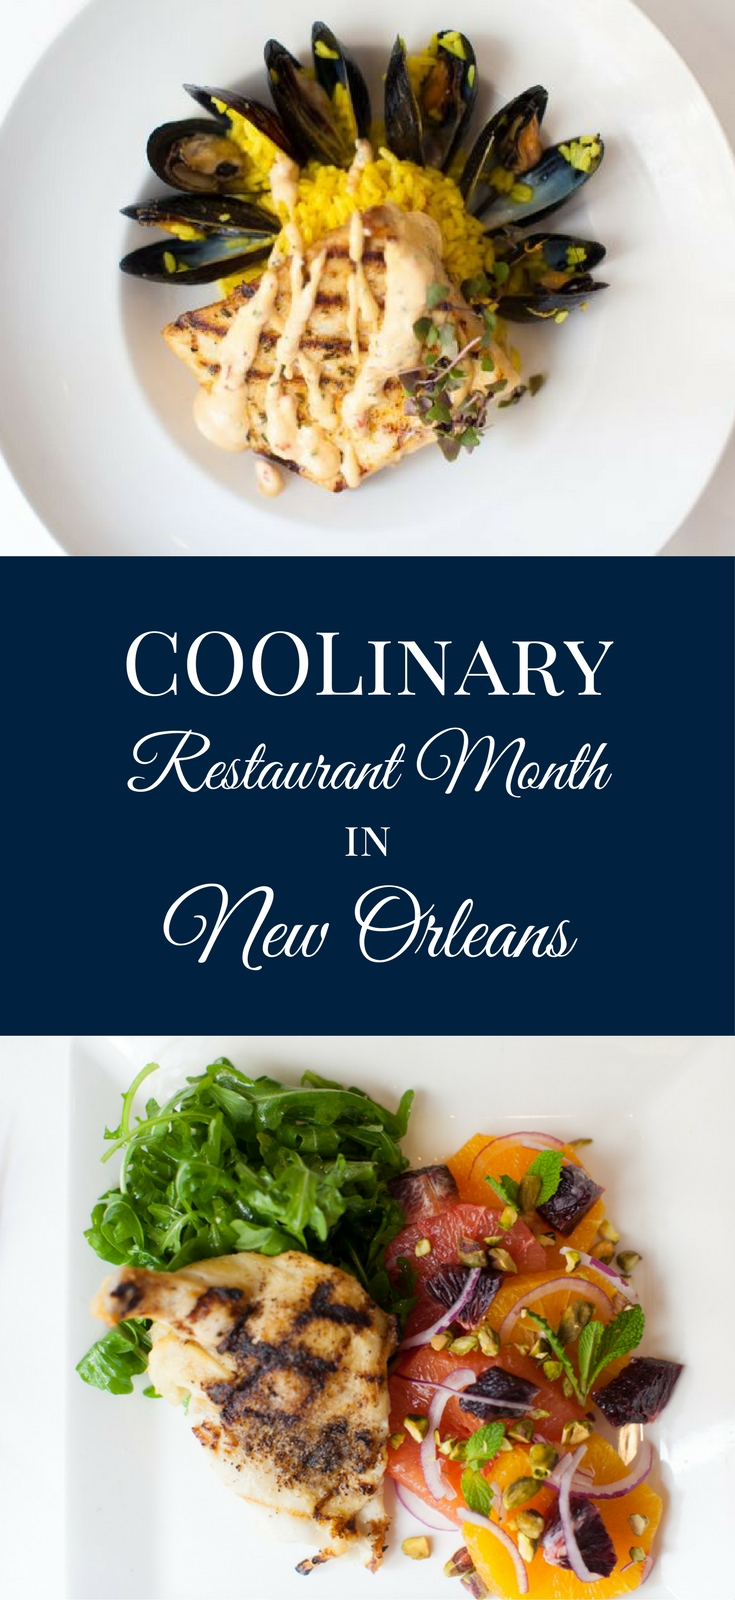 New Orleans offers the ultimate summer dining experience: COOLinary, happening August 1-31. Indulge and taste all that New Orleans has to offer, for less!